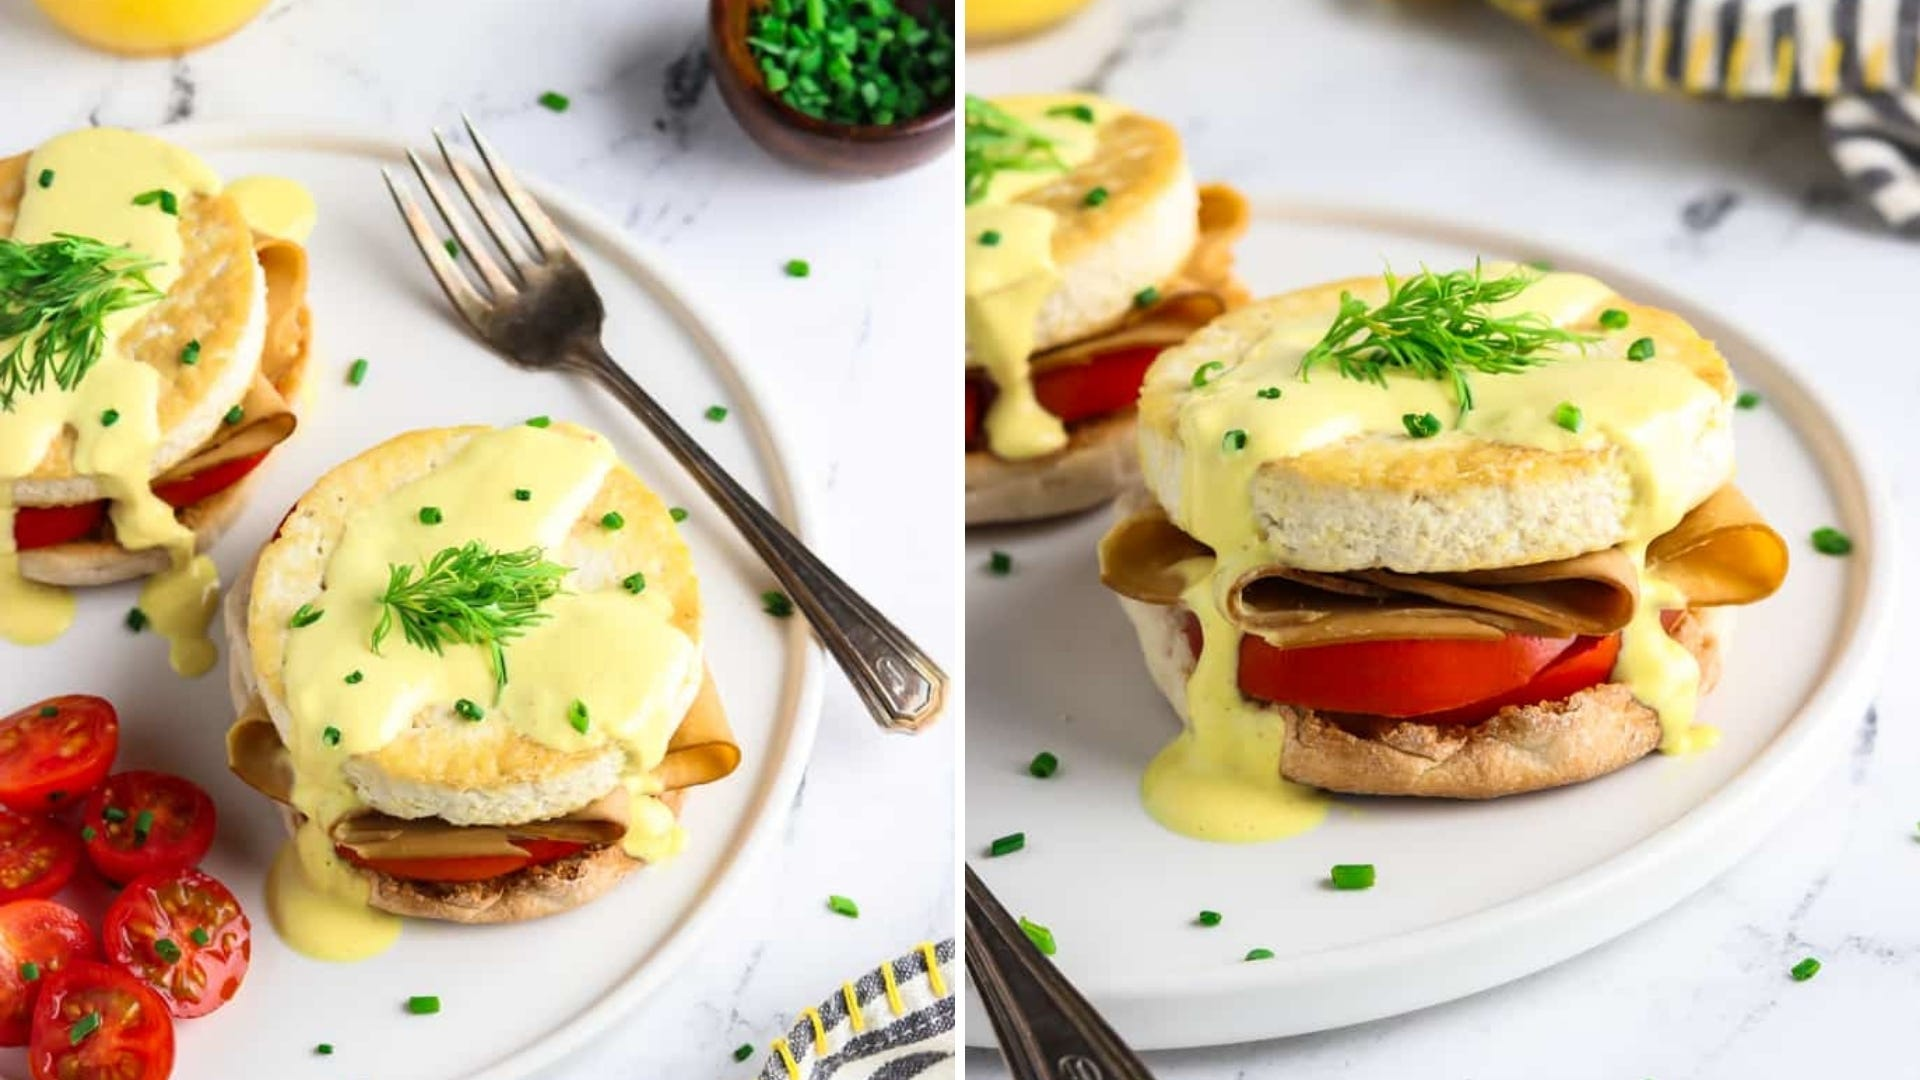 A vegan Eggs Benedict dish sits on a white plate with a tofu patty and creamy sauce.